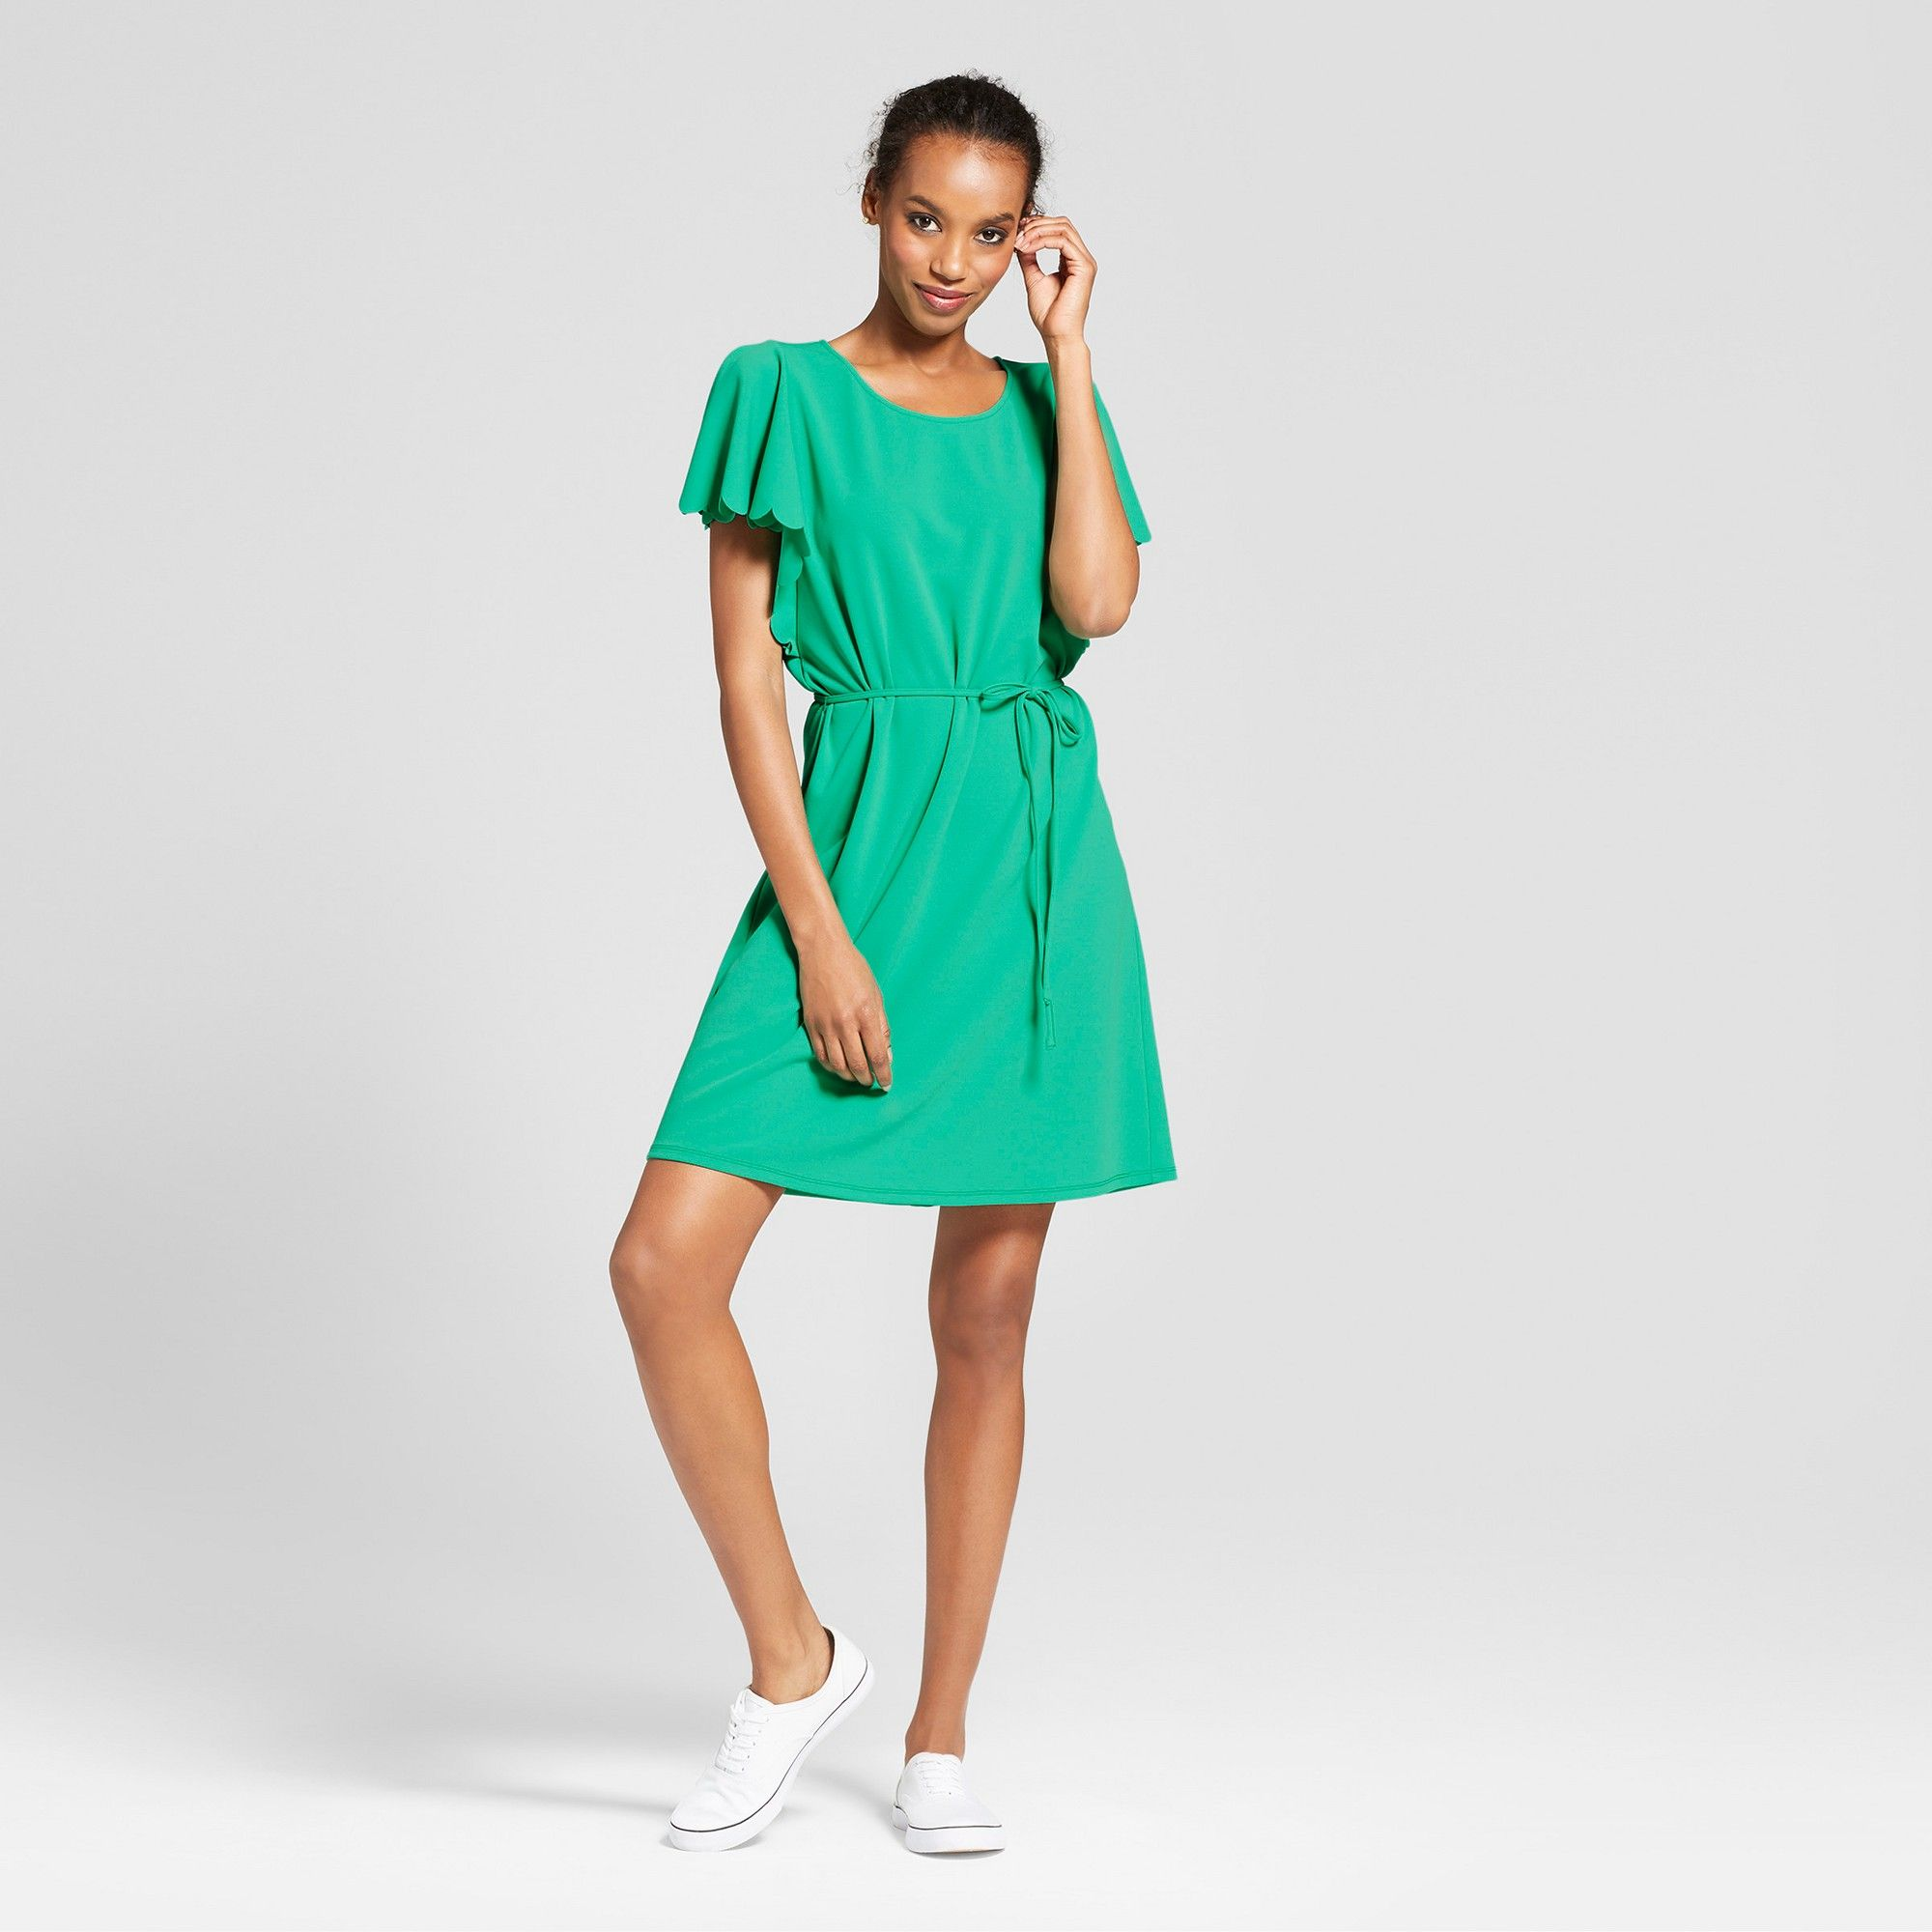 761bc3d86d7 Women's Ponte Scallop Sleeve Dress - A New Day Green S | Products ...